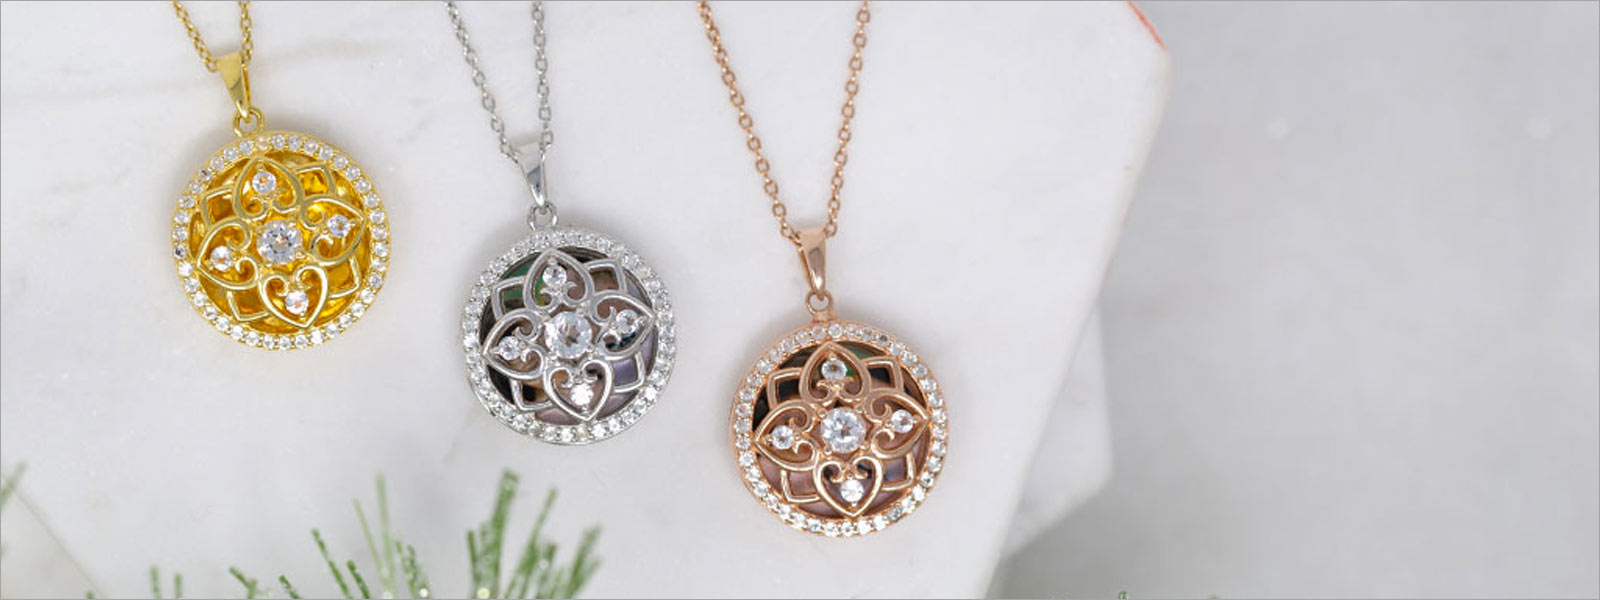 Image of photo lockets, courtesy of With You Lockets.